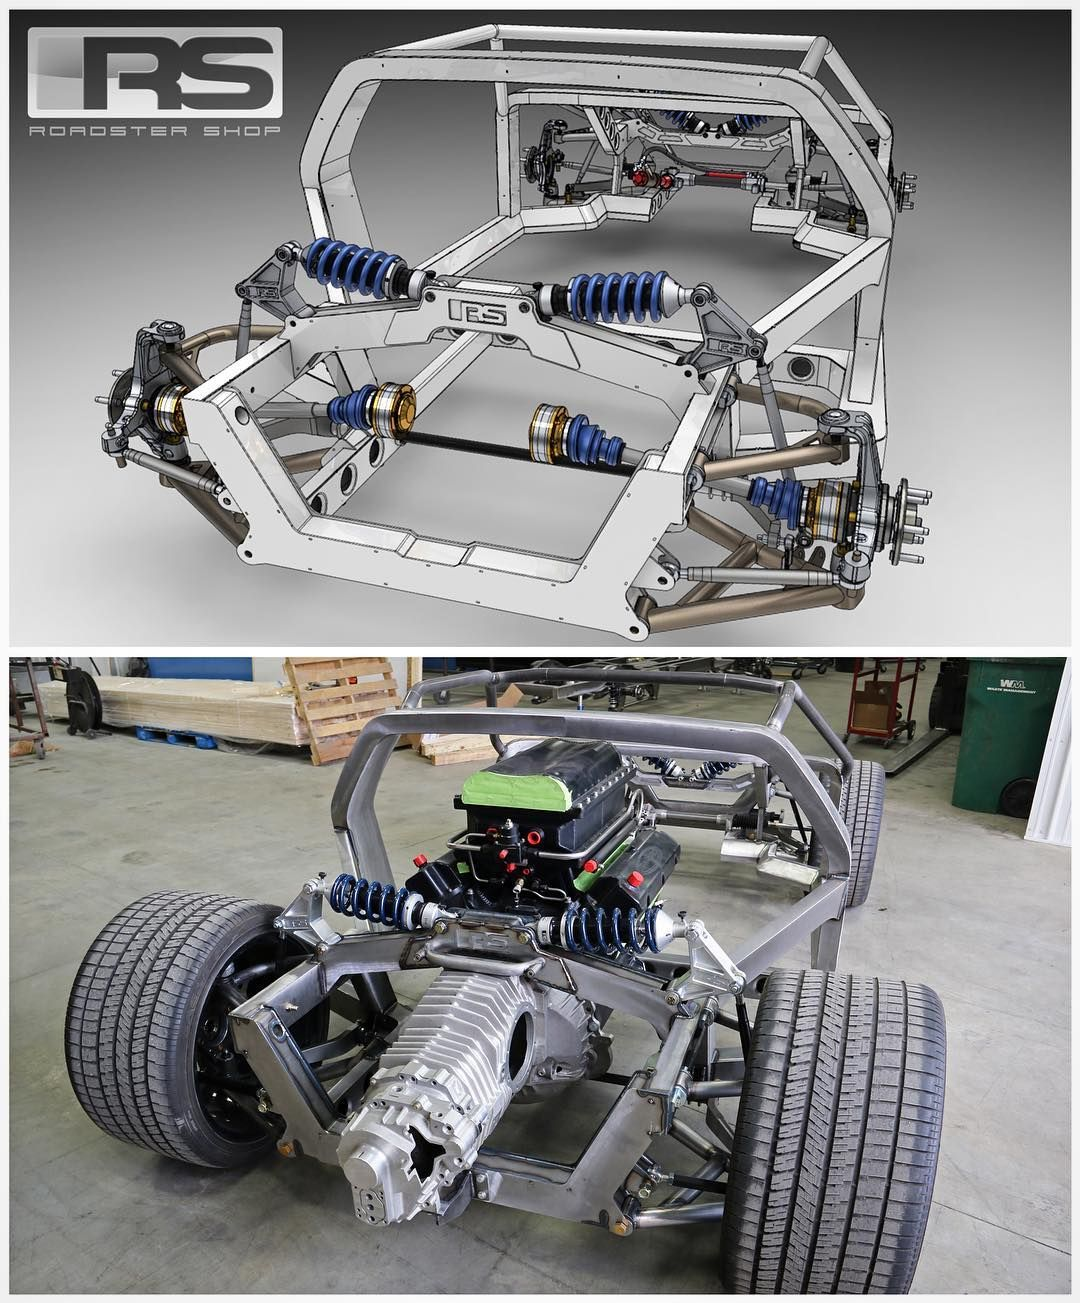 Twin turbo 351 windsor hp mid engine monocoque style perimeter chassis for a de